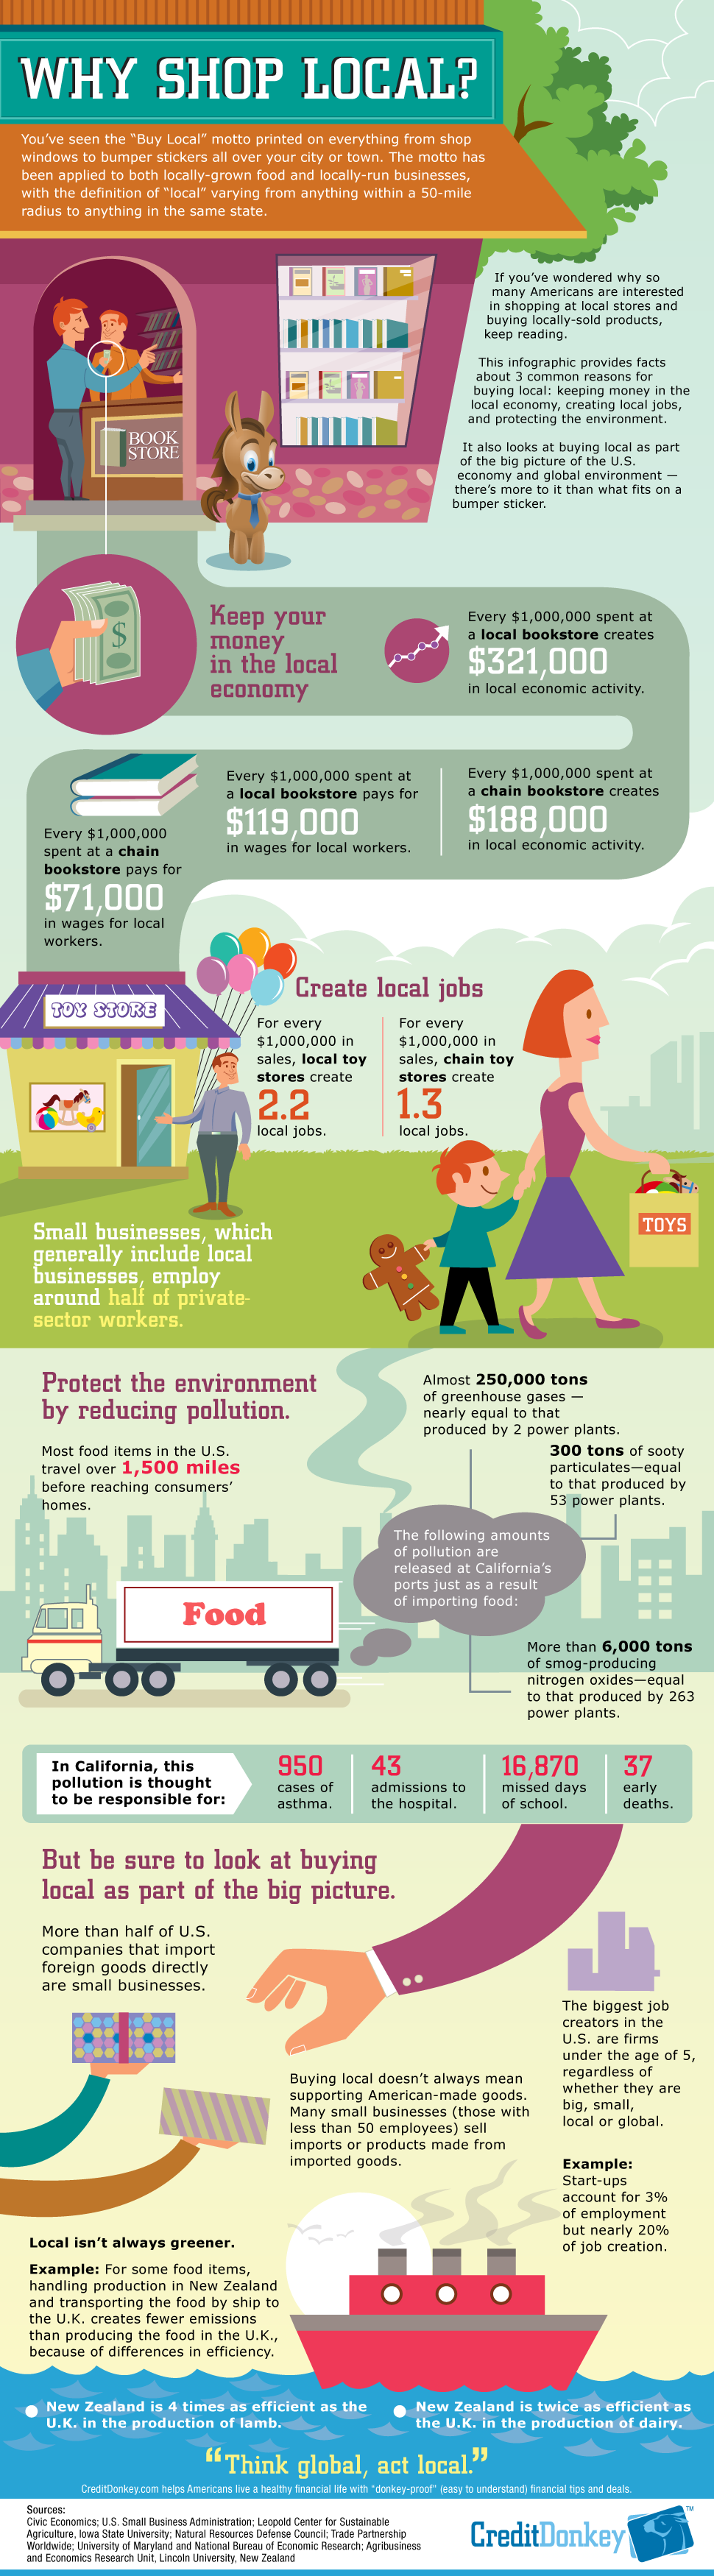 10 why-shop-local